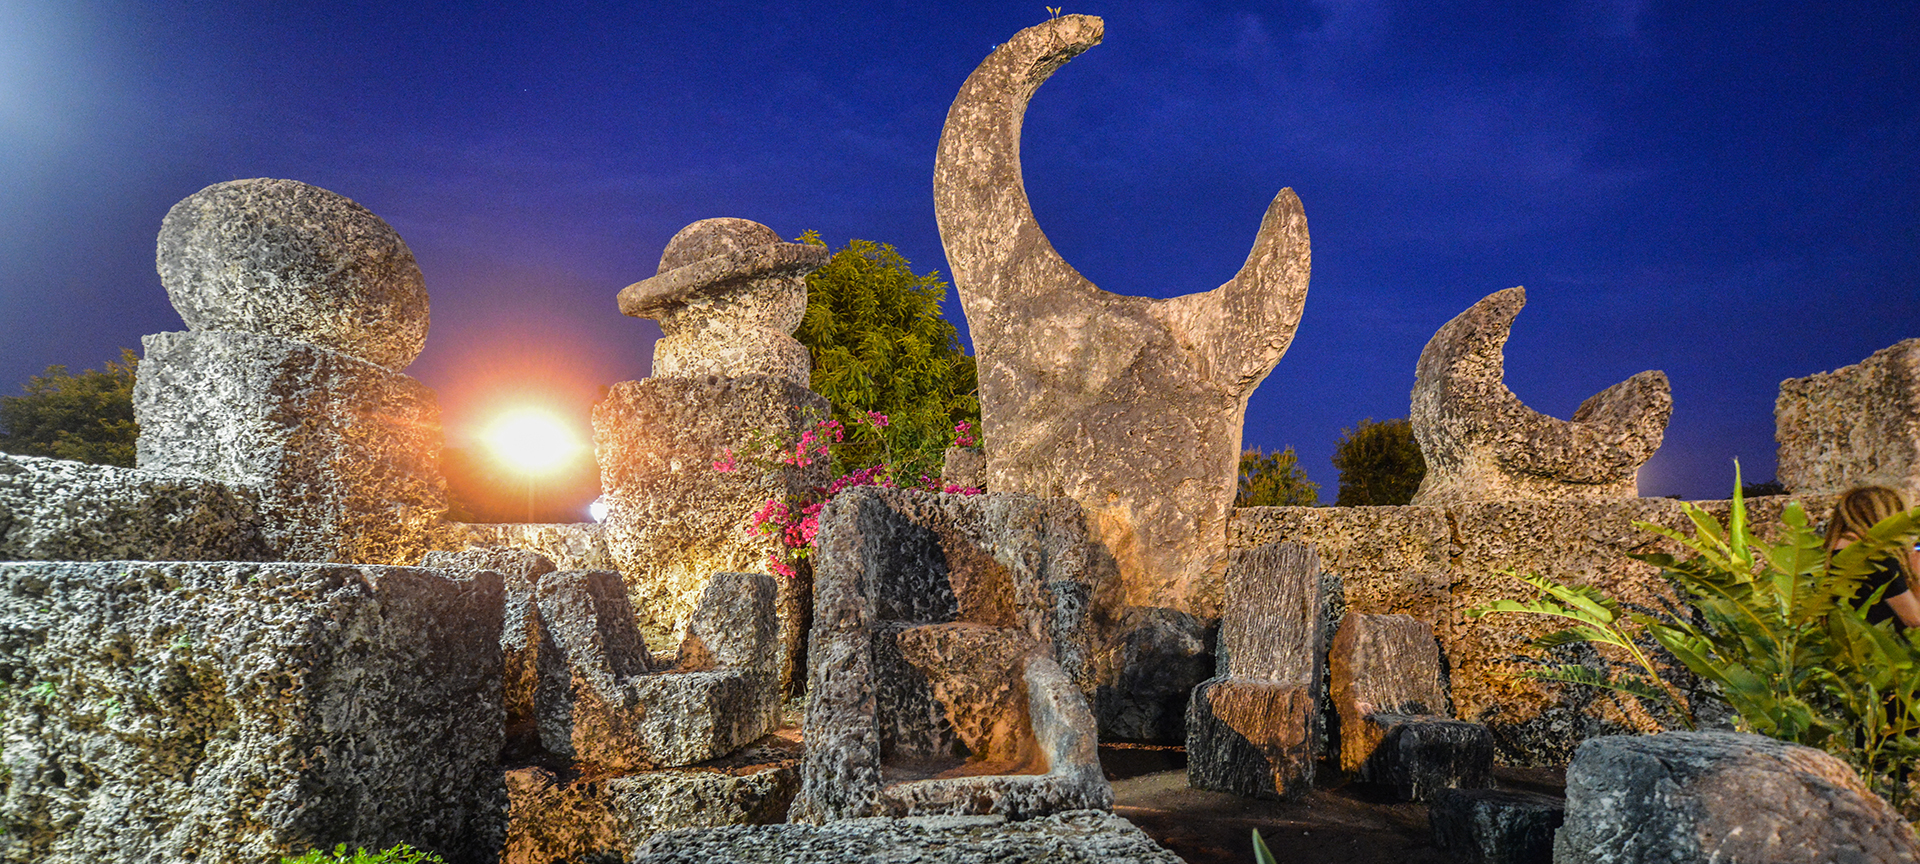 The moon fountain is one of the most beautiful carvings at Coral Castle. It's made of three distinct pieces: two crescent moons which stand vertically, flanking the large full moon which sits horizontally in the center. This unique representation of the moon shows three phases: Waxing, Waning and the Full Moon.